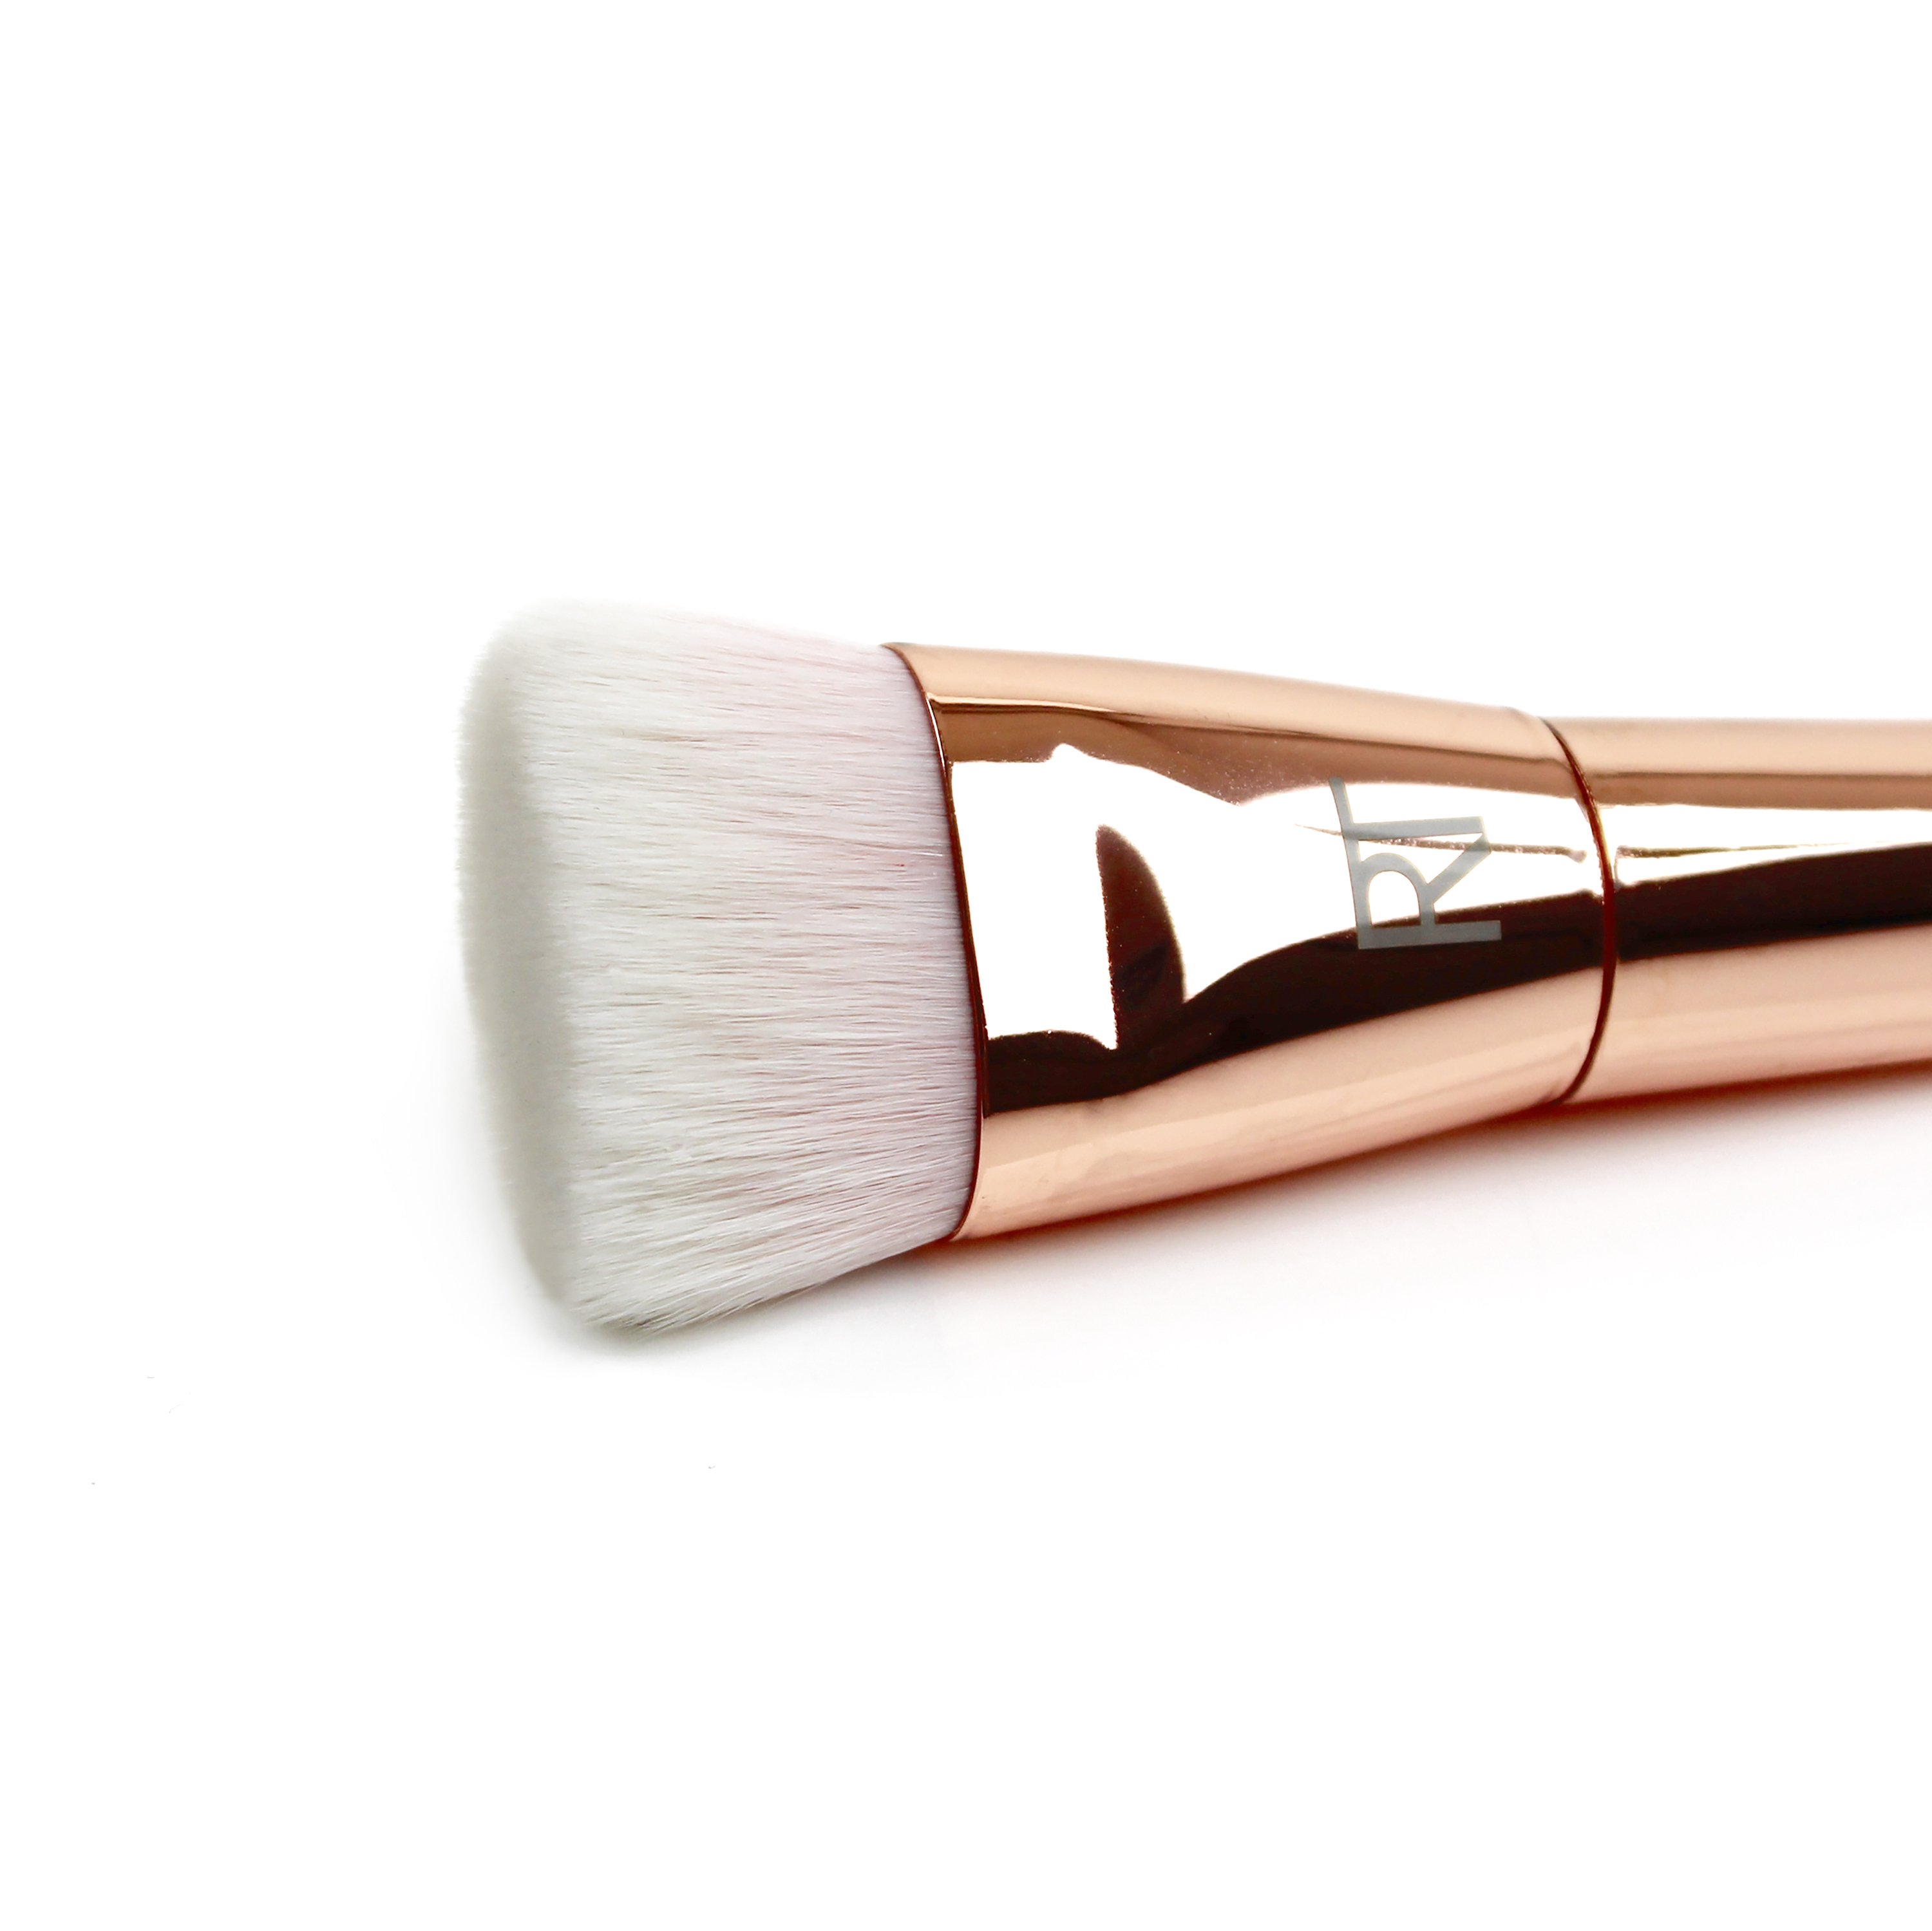 contour brush real techniques. real techniques bold metals collection 301 flat contour brush image 4 of g